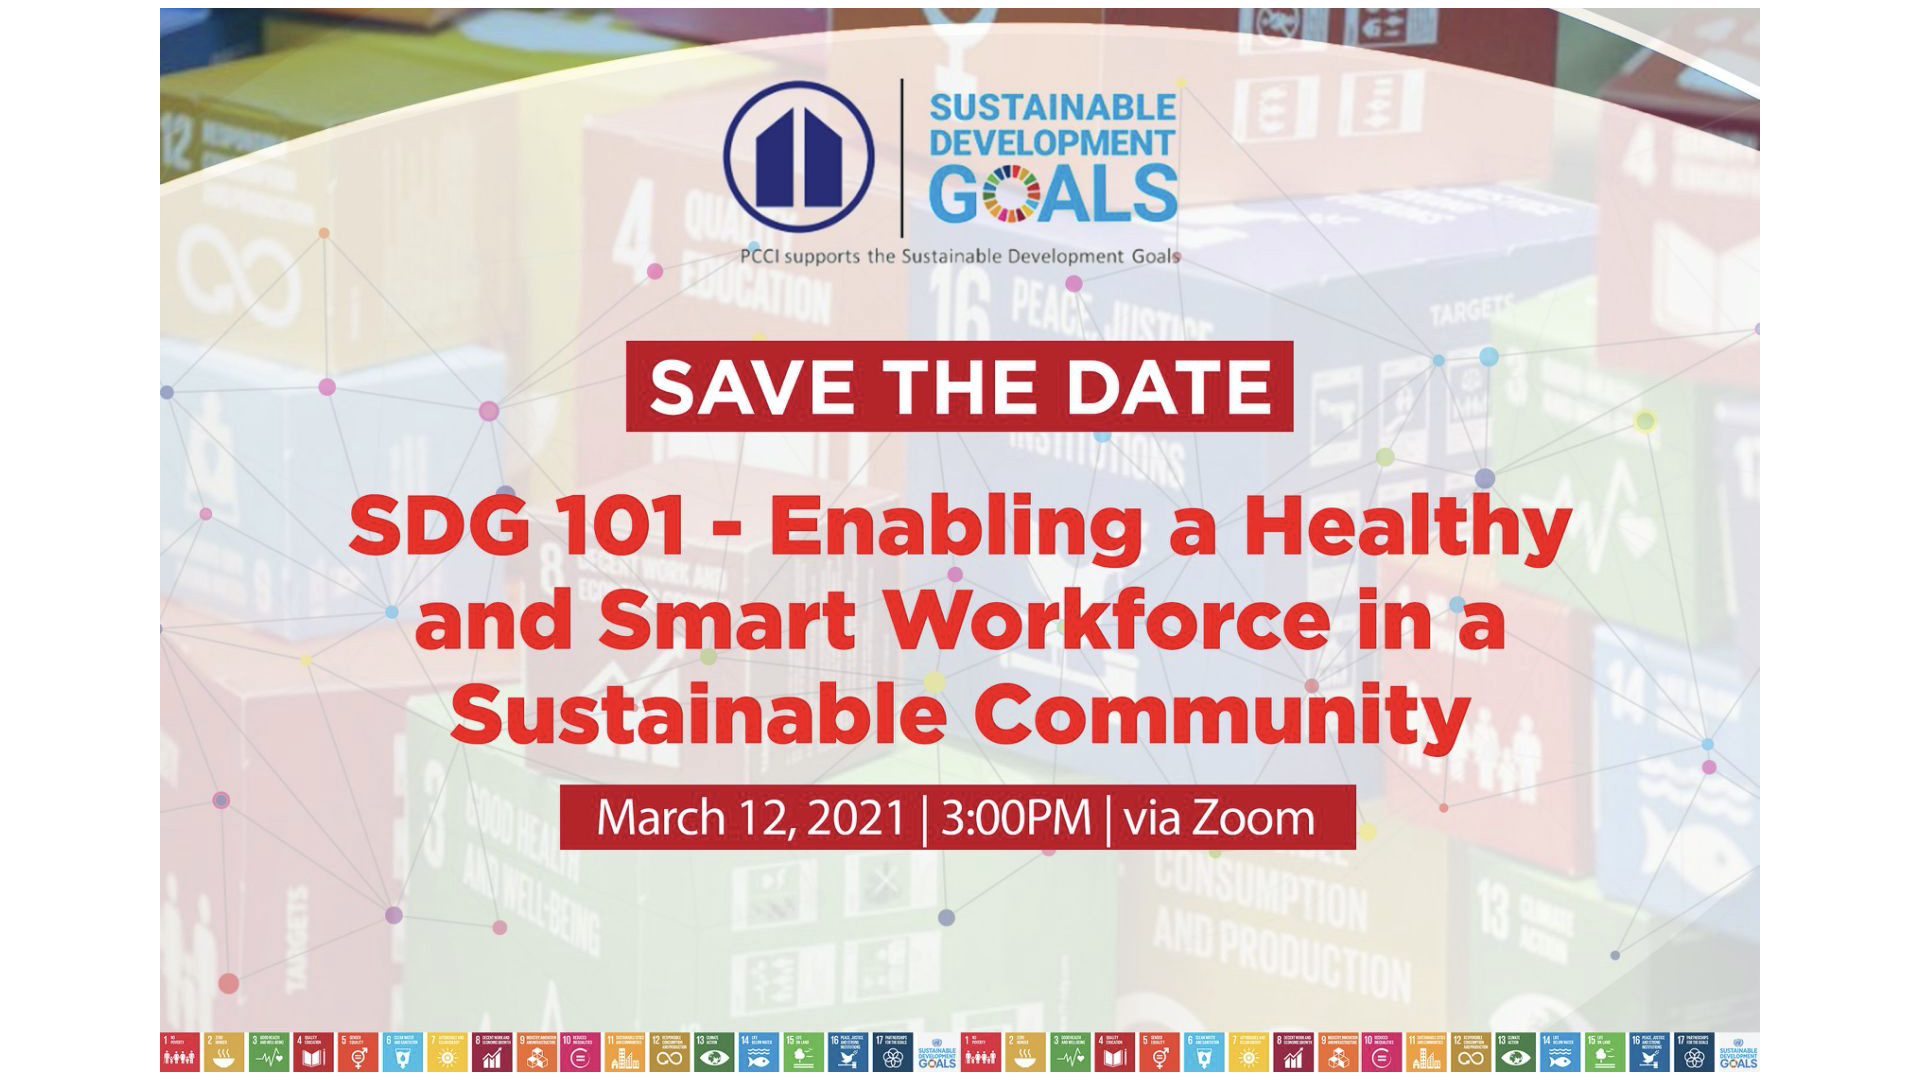 SDG 101: Enabling a Healthy and Smart Workforce in a Sustainable Community